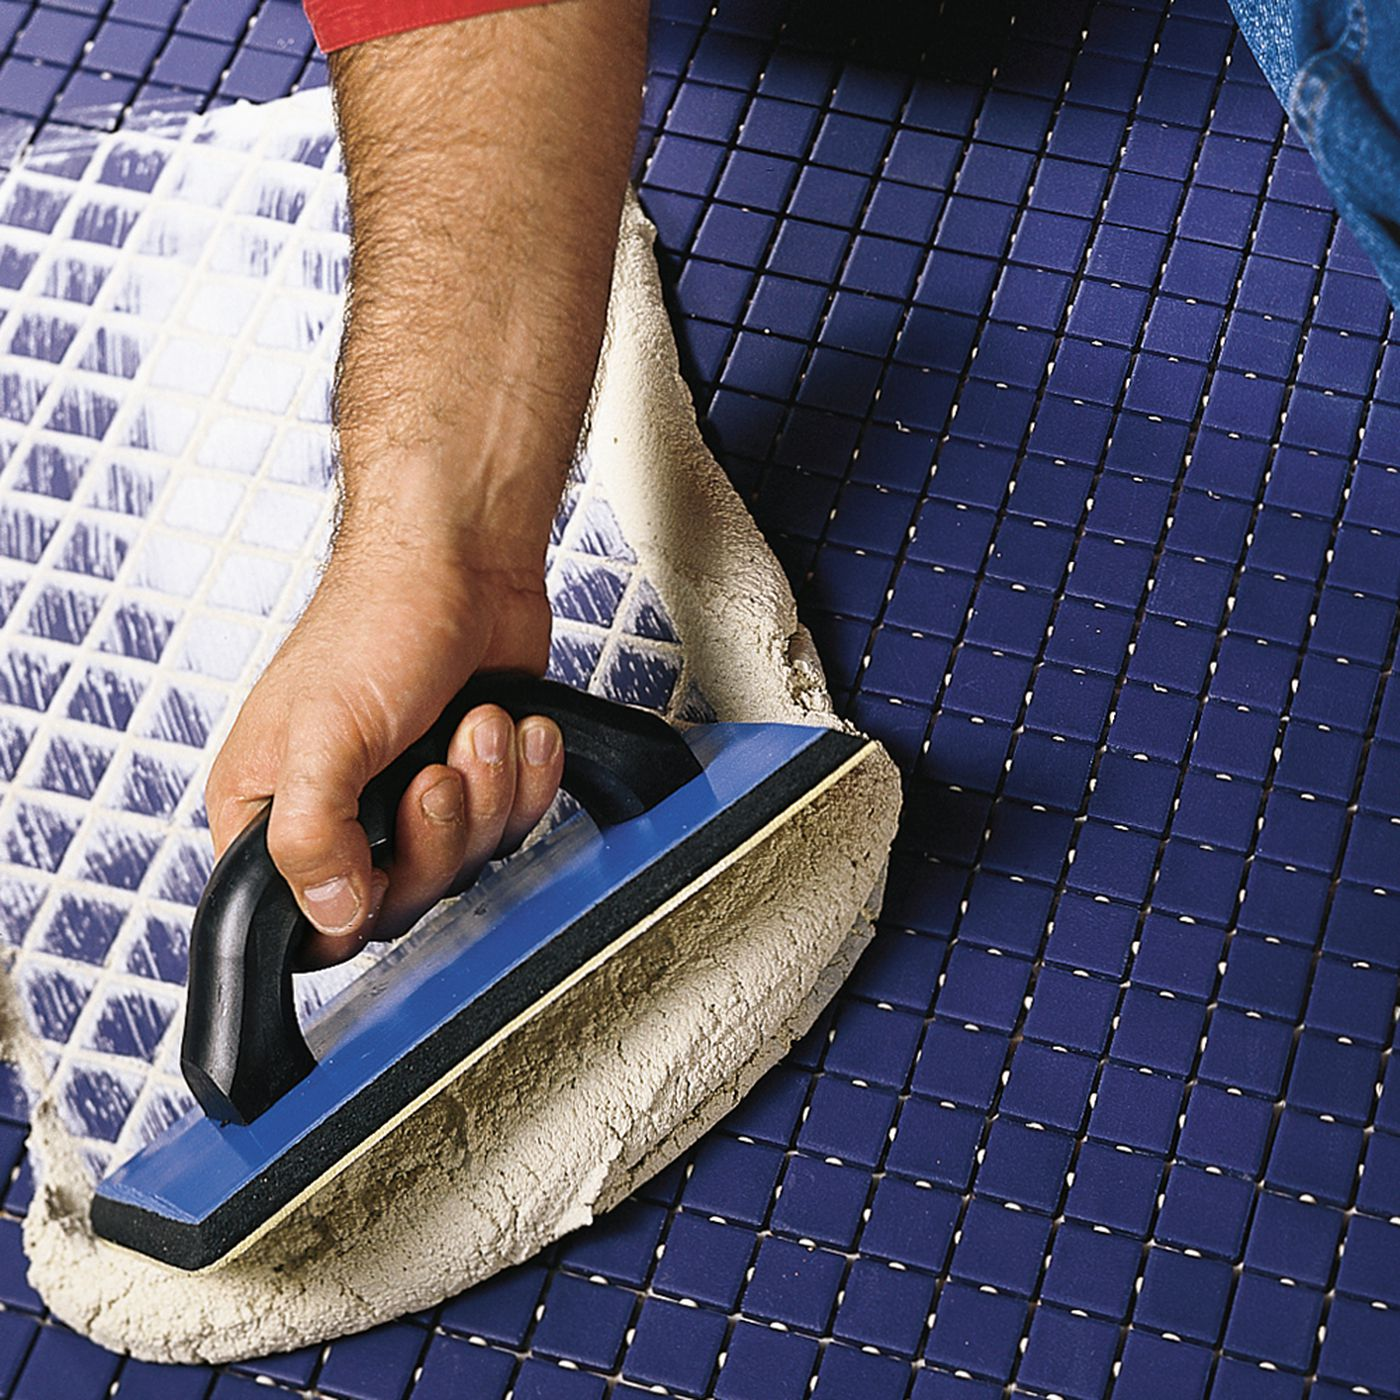 All About Tile Grout Cleaning Sealing Color Options More This Old House